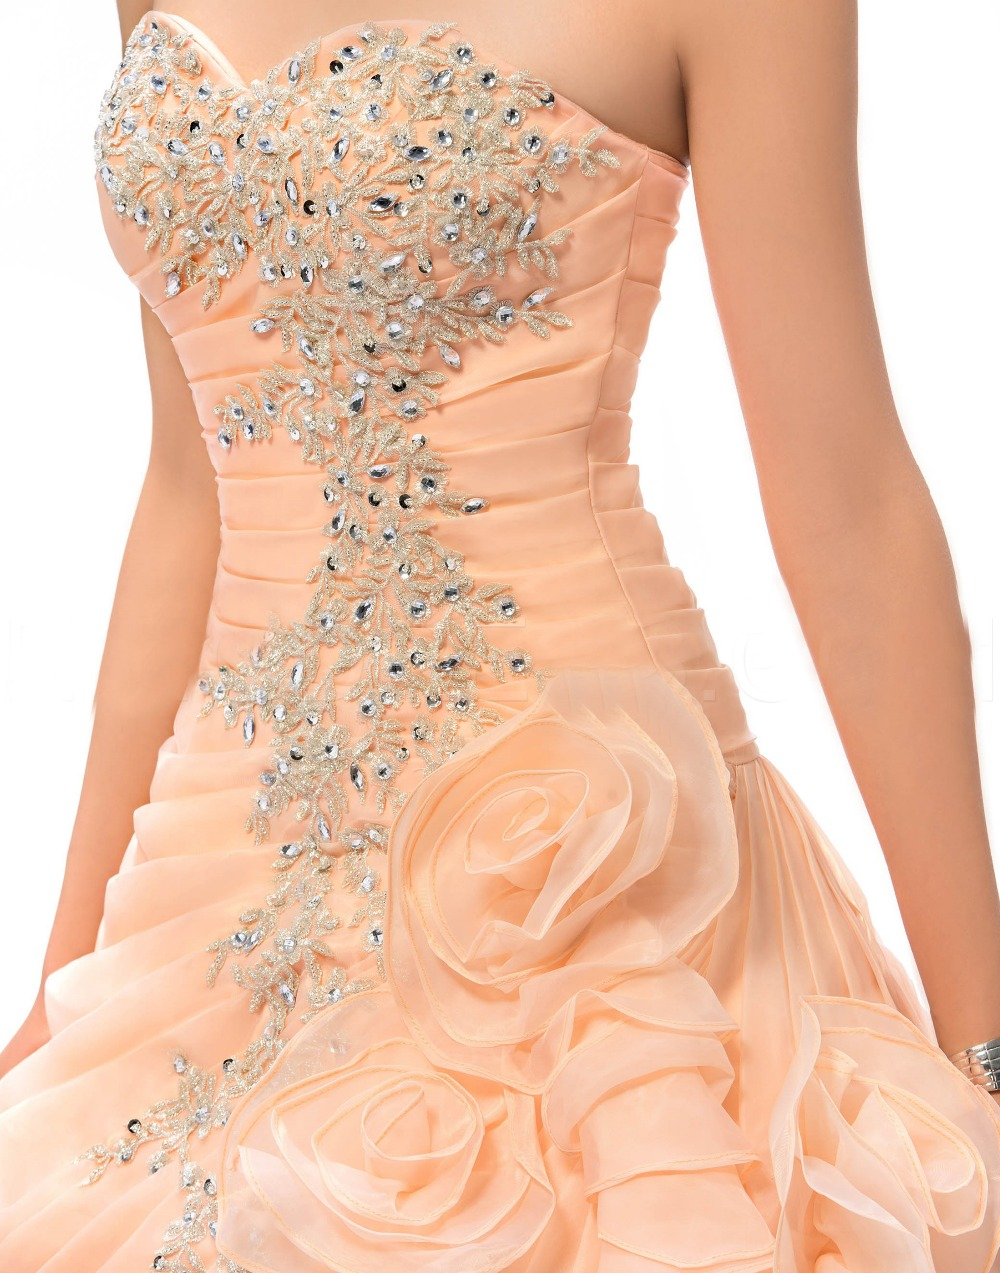 peach quinceanera dresses sweet 16 princess dresses crystal vestidos de debutante 15 anos organza party ball gowns YK_028 in Quinceanera Dresses from Weddings Events